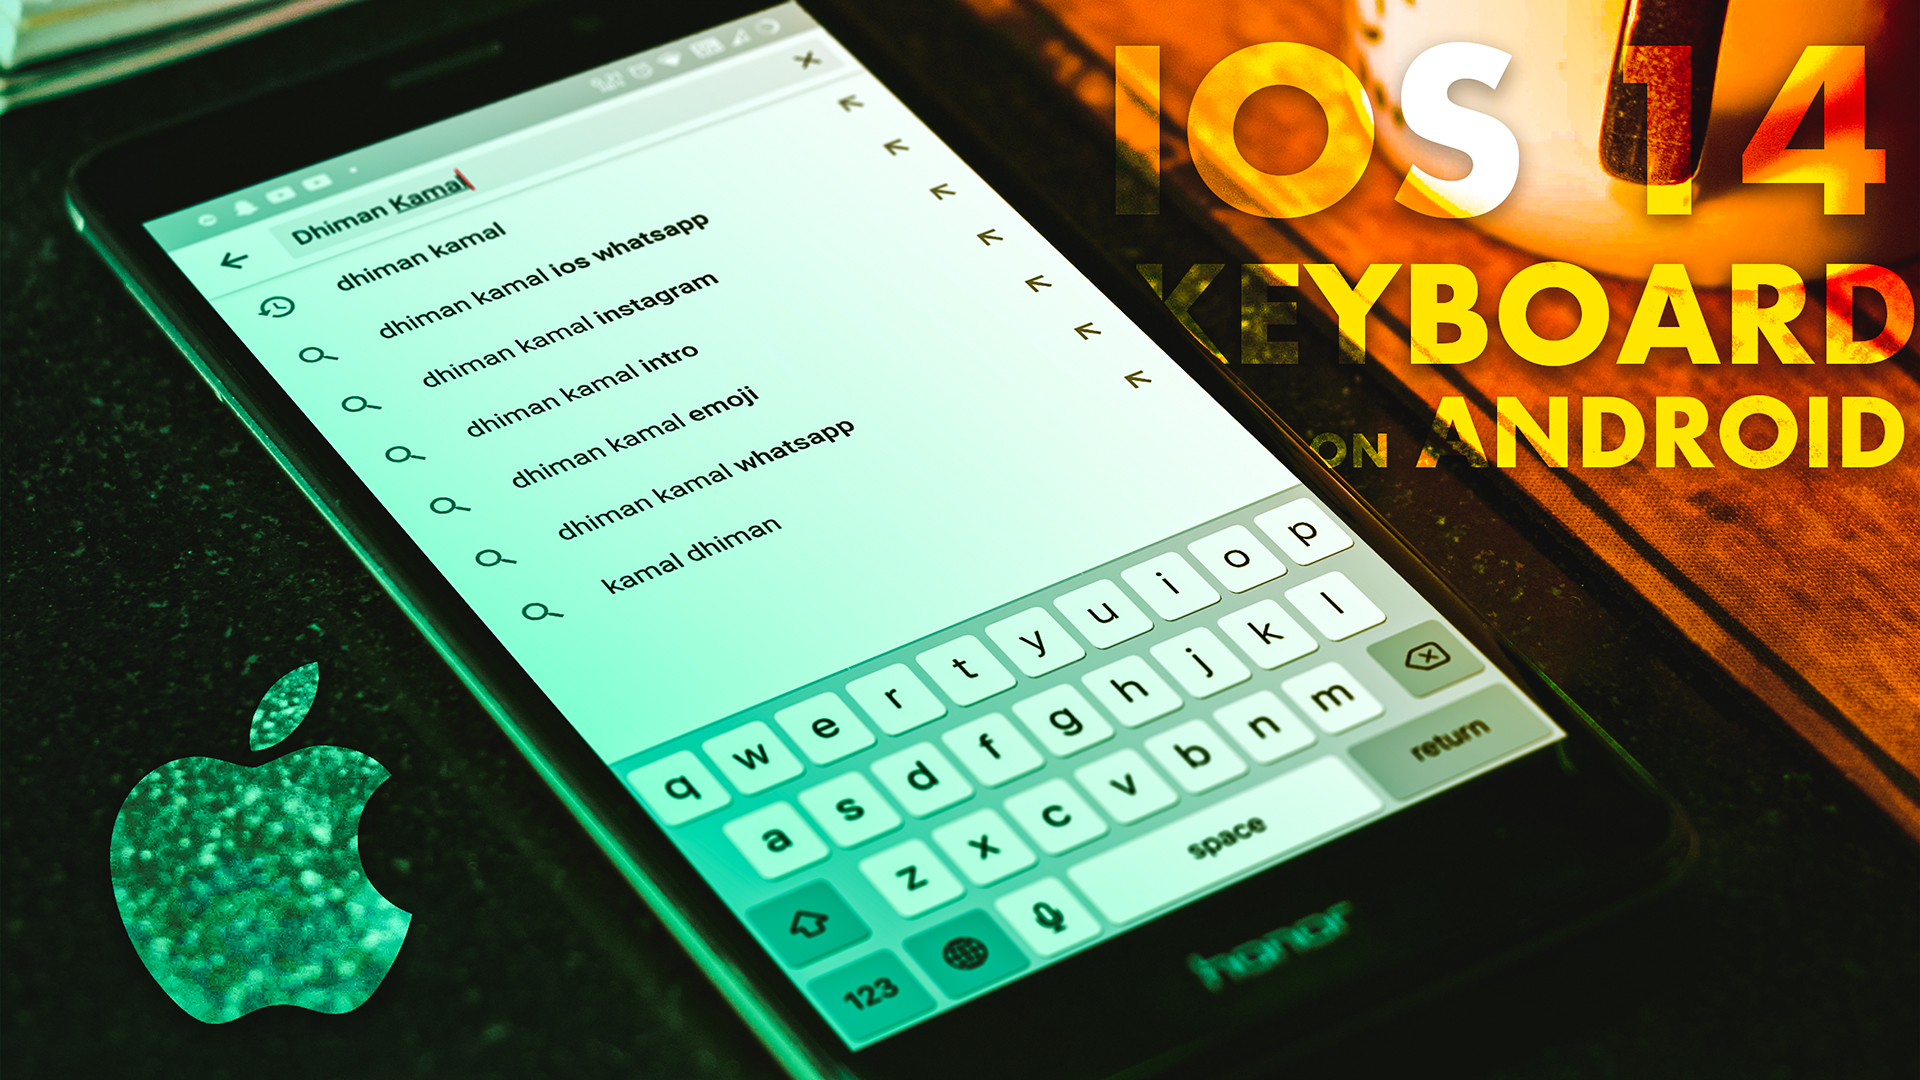 iPhone 12 Keyboard On Any Android // iOS 14 Keyboard For ...